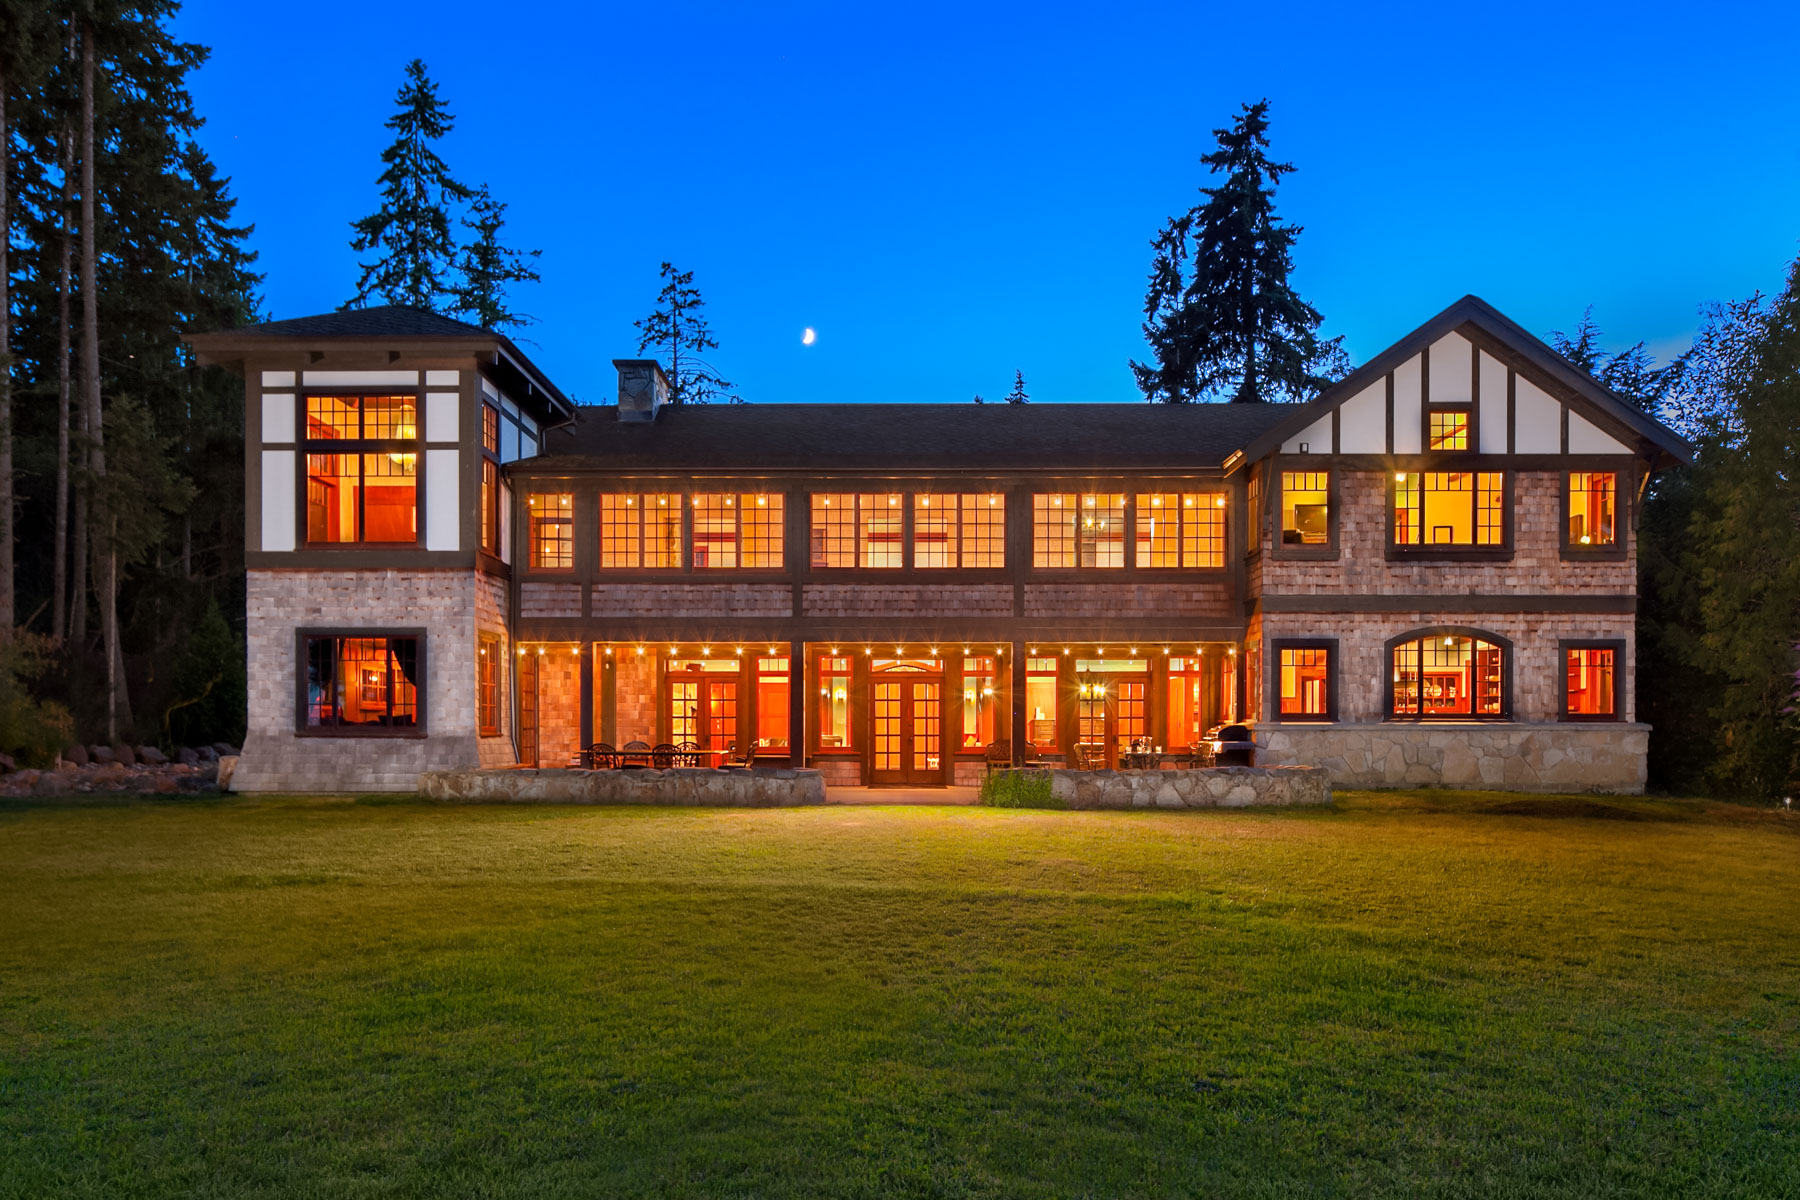 House for Sale at The Lodge at Blakley Harbor 10254 NE Country Club Rd Bainbridge Island, Washington 98110 United States